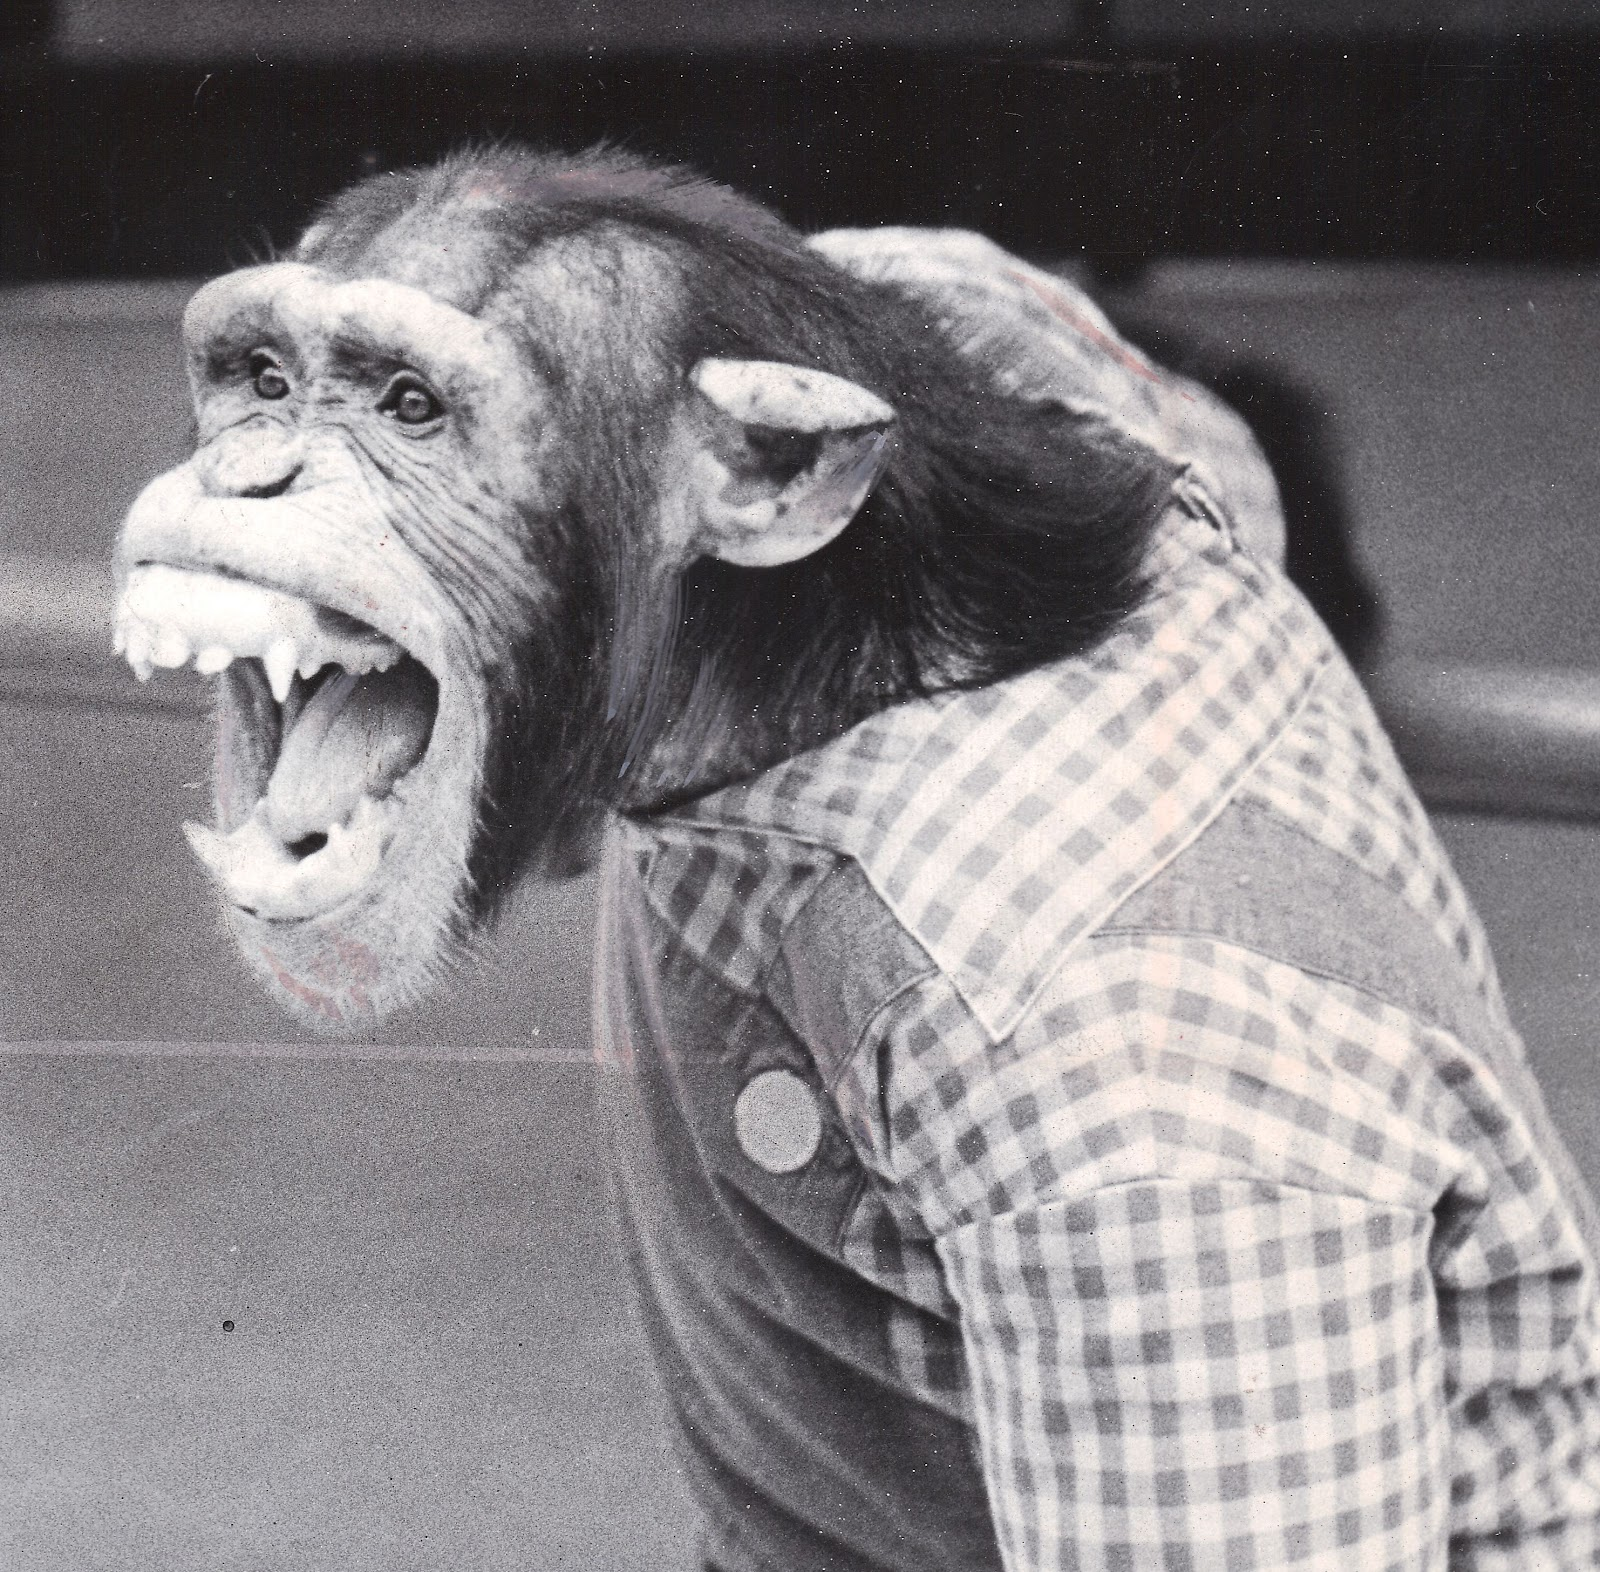 Chimpanzee pictures chimpanzees are all black but - He Performed For The Detroit Zoo From 1968 To 1976 When He Became Too Aggressive For The Chimp Shows And Was